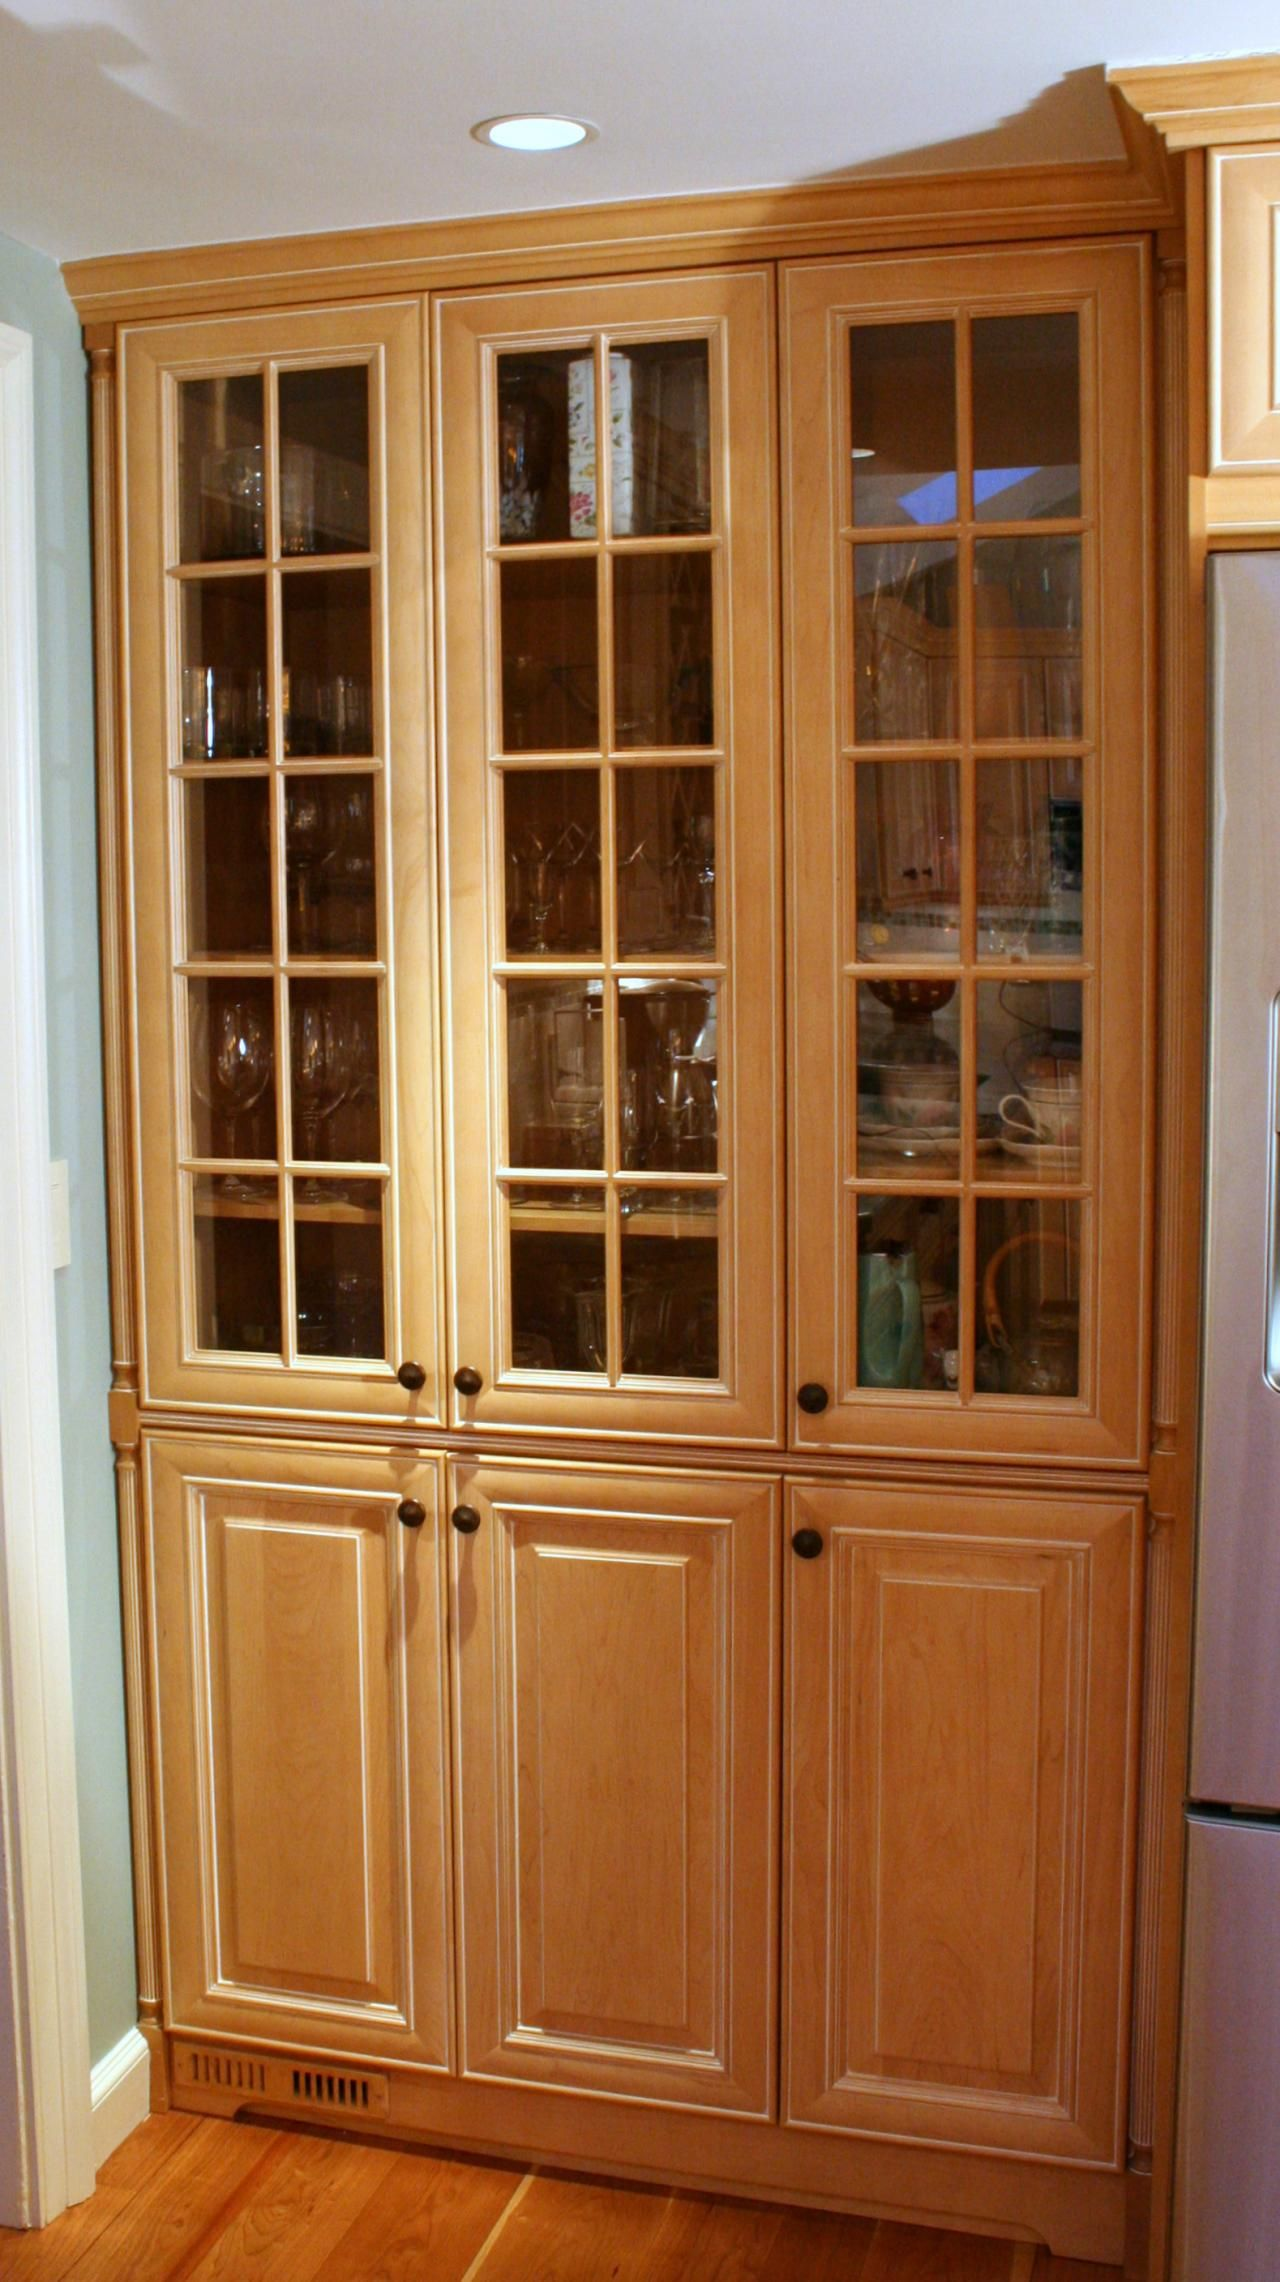 Best China Closet Built Into Kitchen Area Nice But Like If It 640 x 480